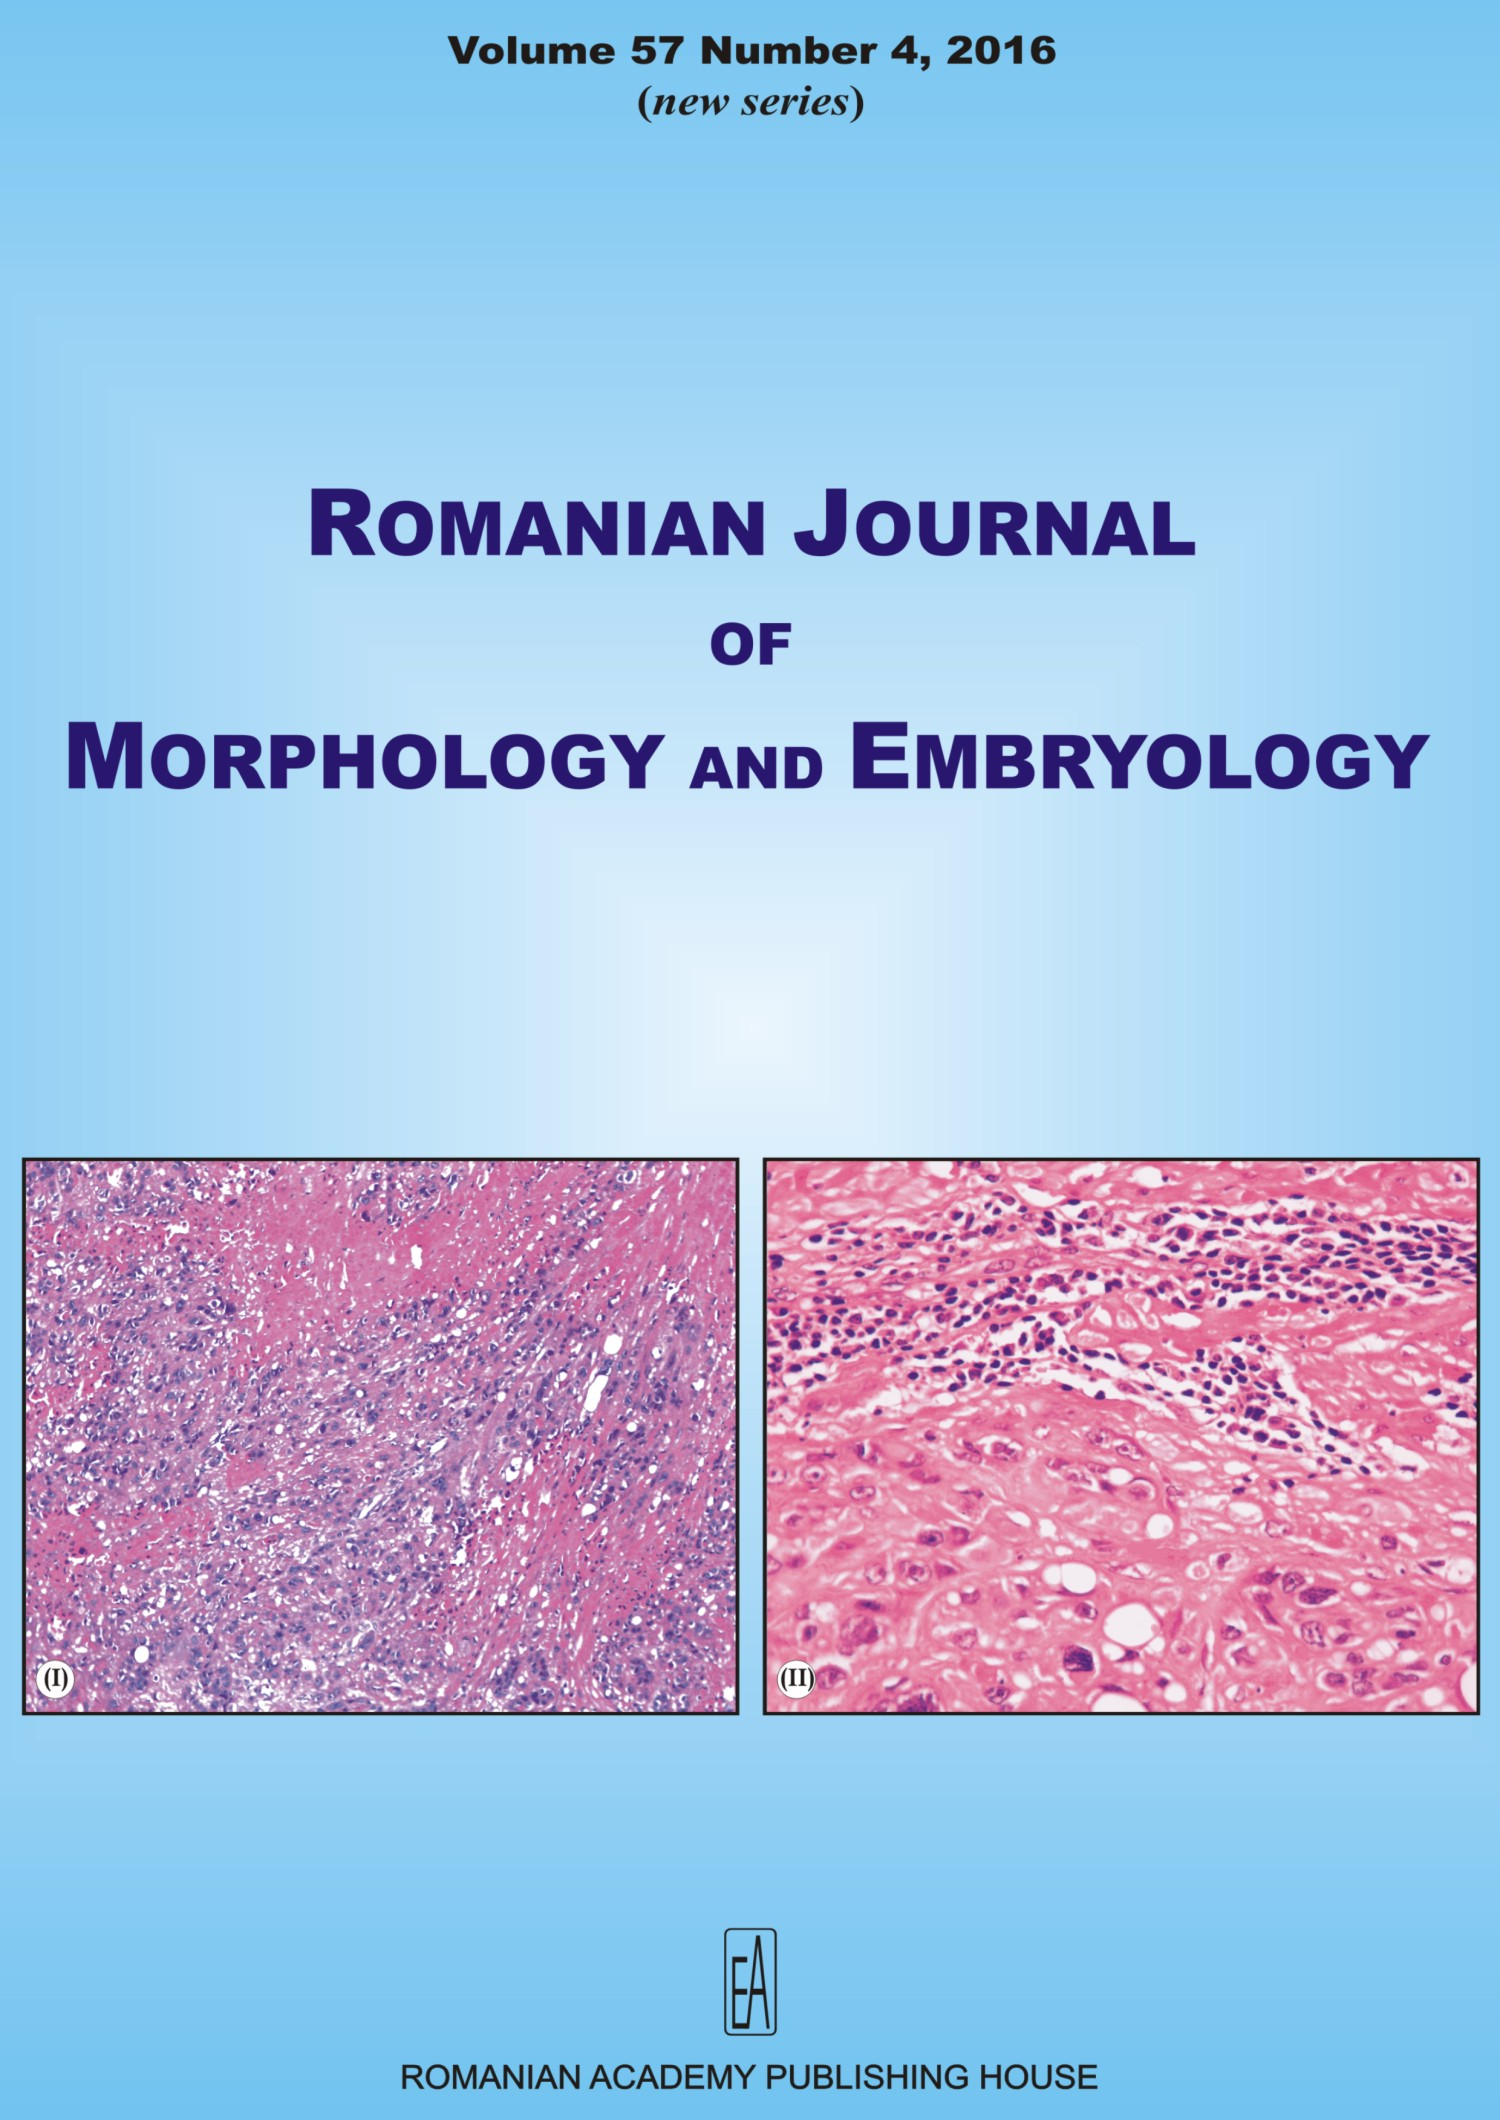 Romanian Journal of Morphology and Embryology, vol. 57 no. 4, 2016